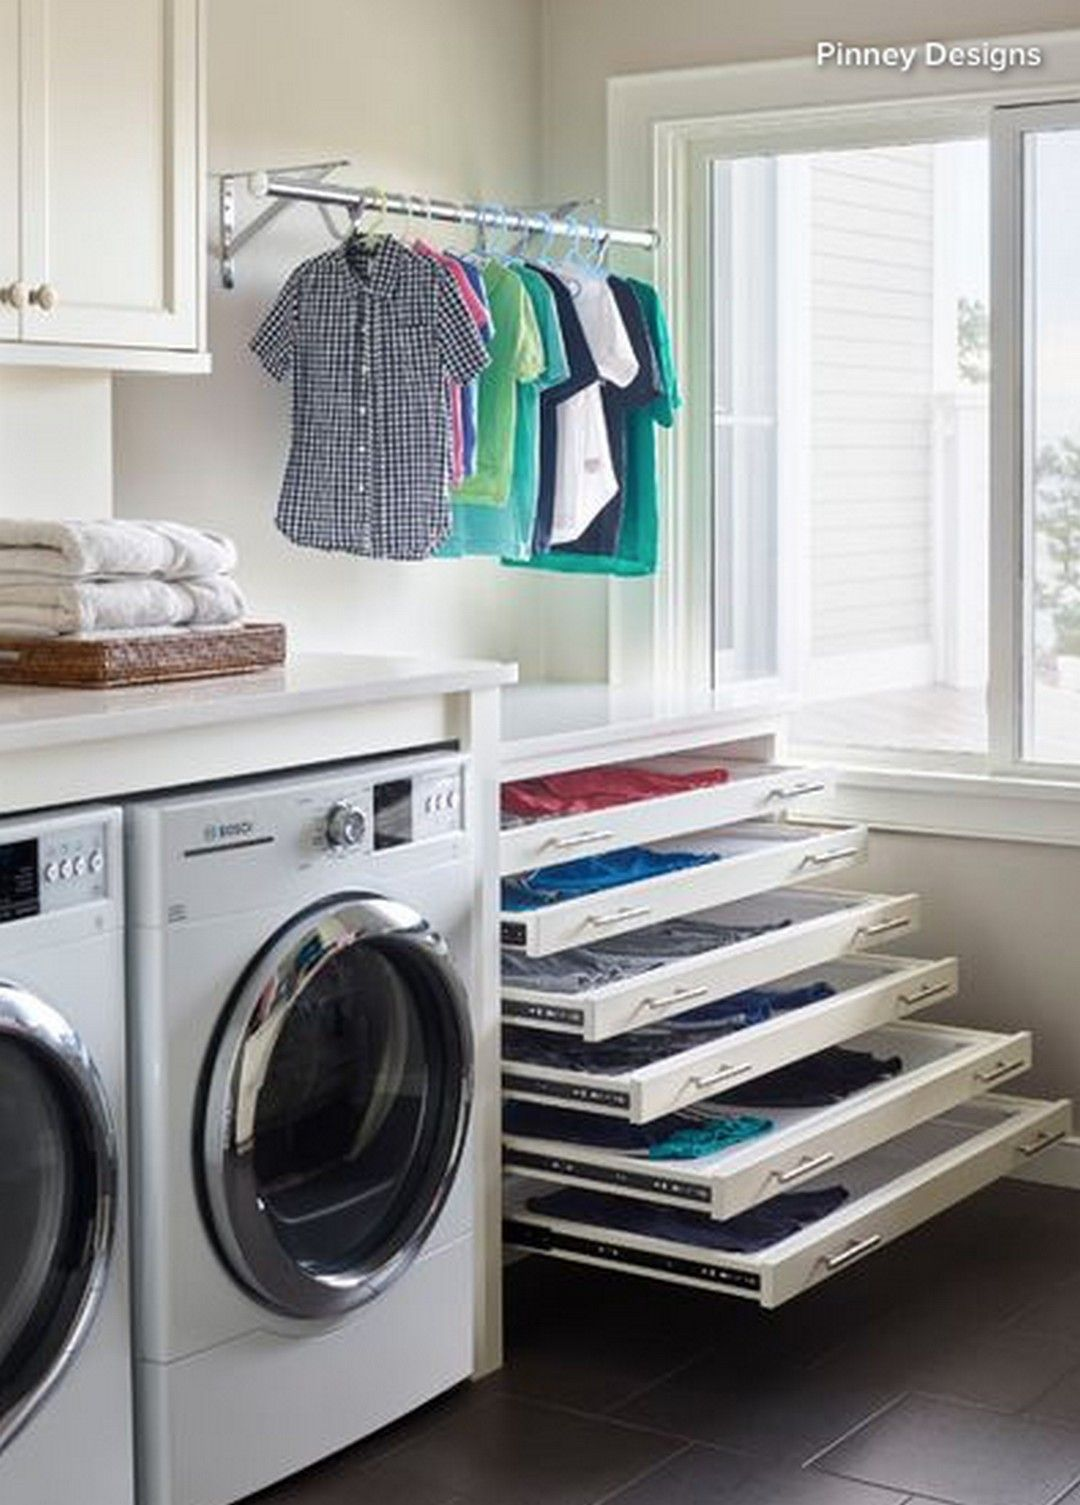 Pin By Kati Onstead On Addition Laundry Room Design Laundry